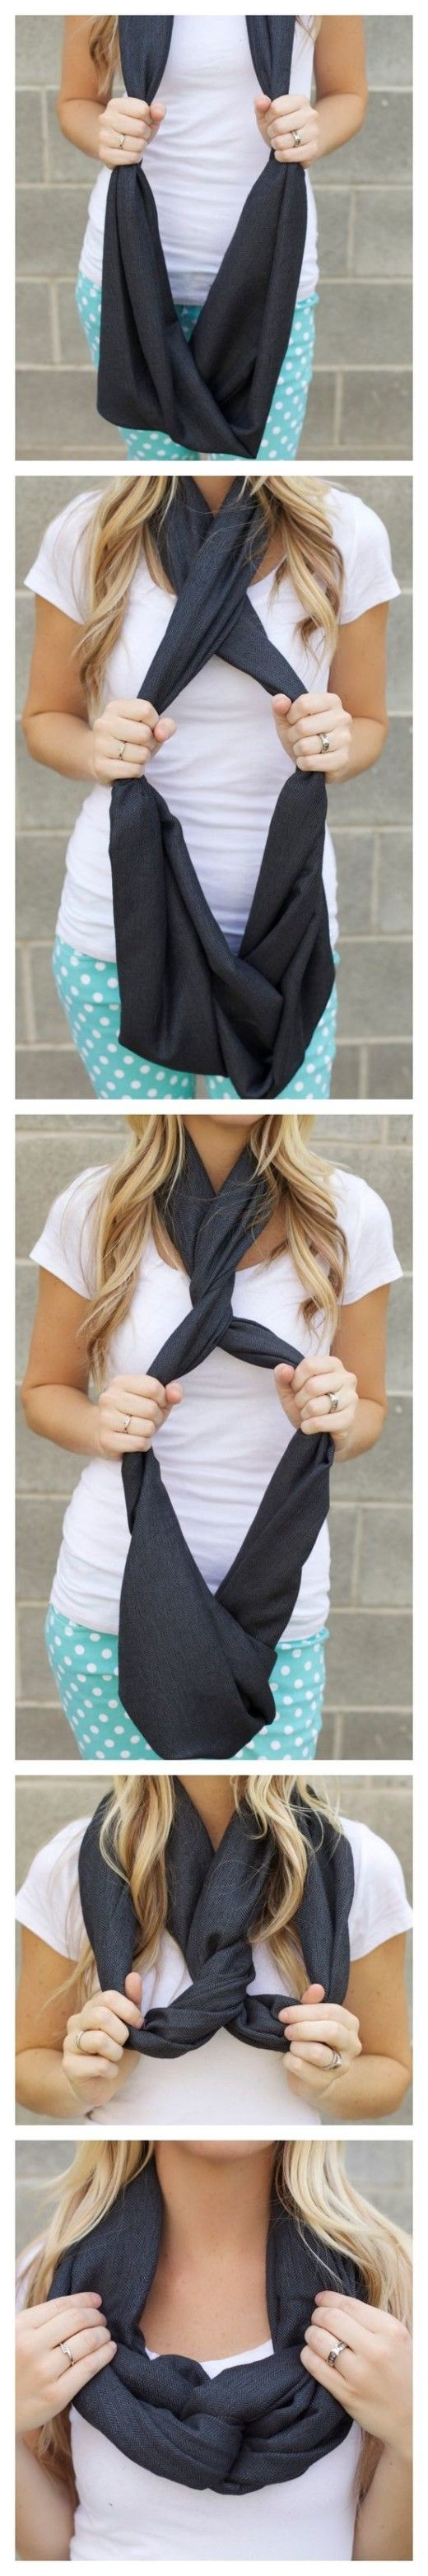 another way to wear an infinity scarf❤️